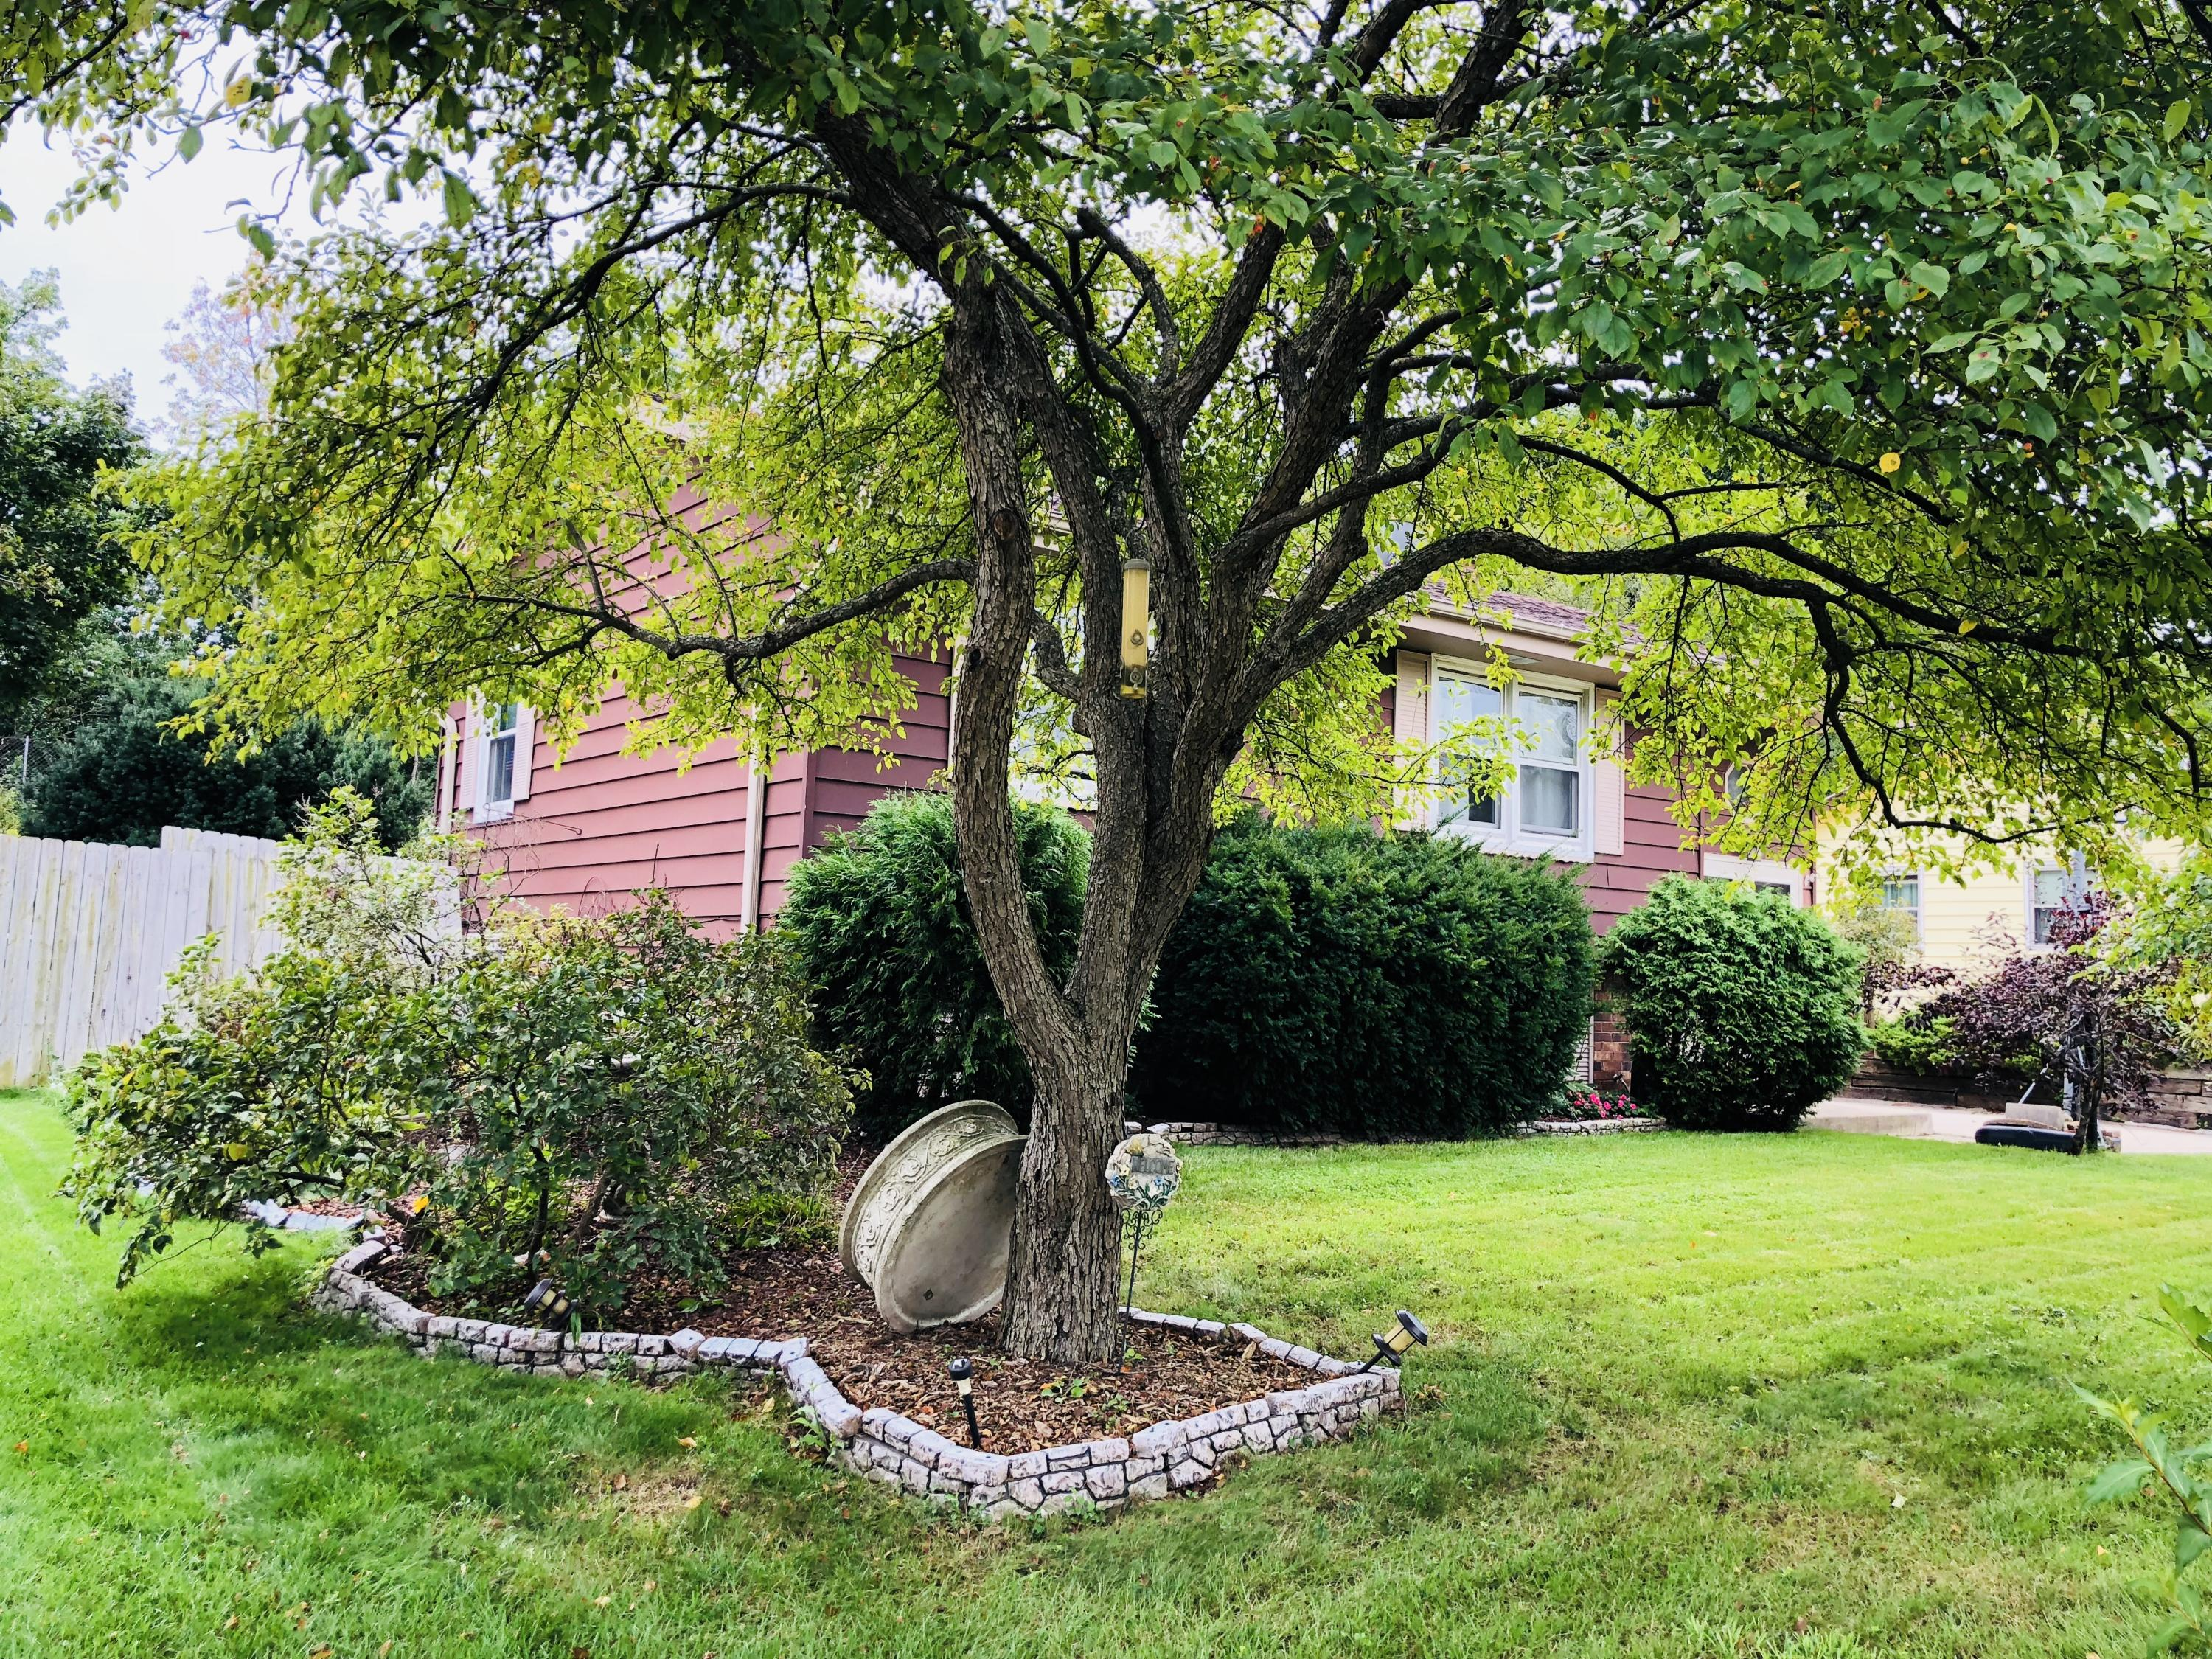 237 Willow Dr, Hartland, Wisconsin 53029, 4 Bedrooms Bedrooms, 7 Rooms Rooms,1 BathroomBathrooms,Single-Family,For Sale,Willow Dr,1604645